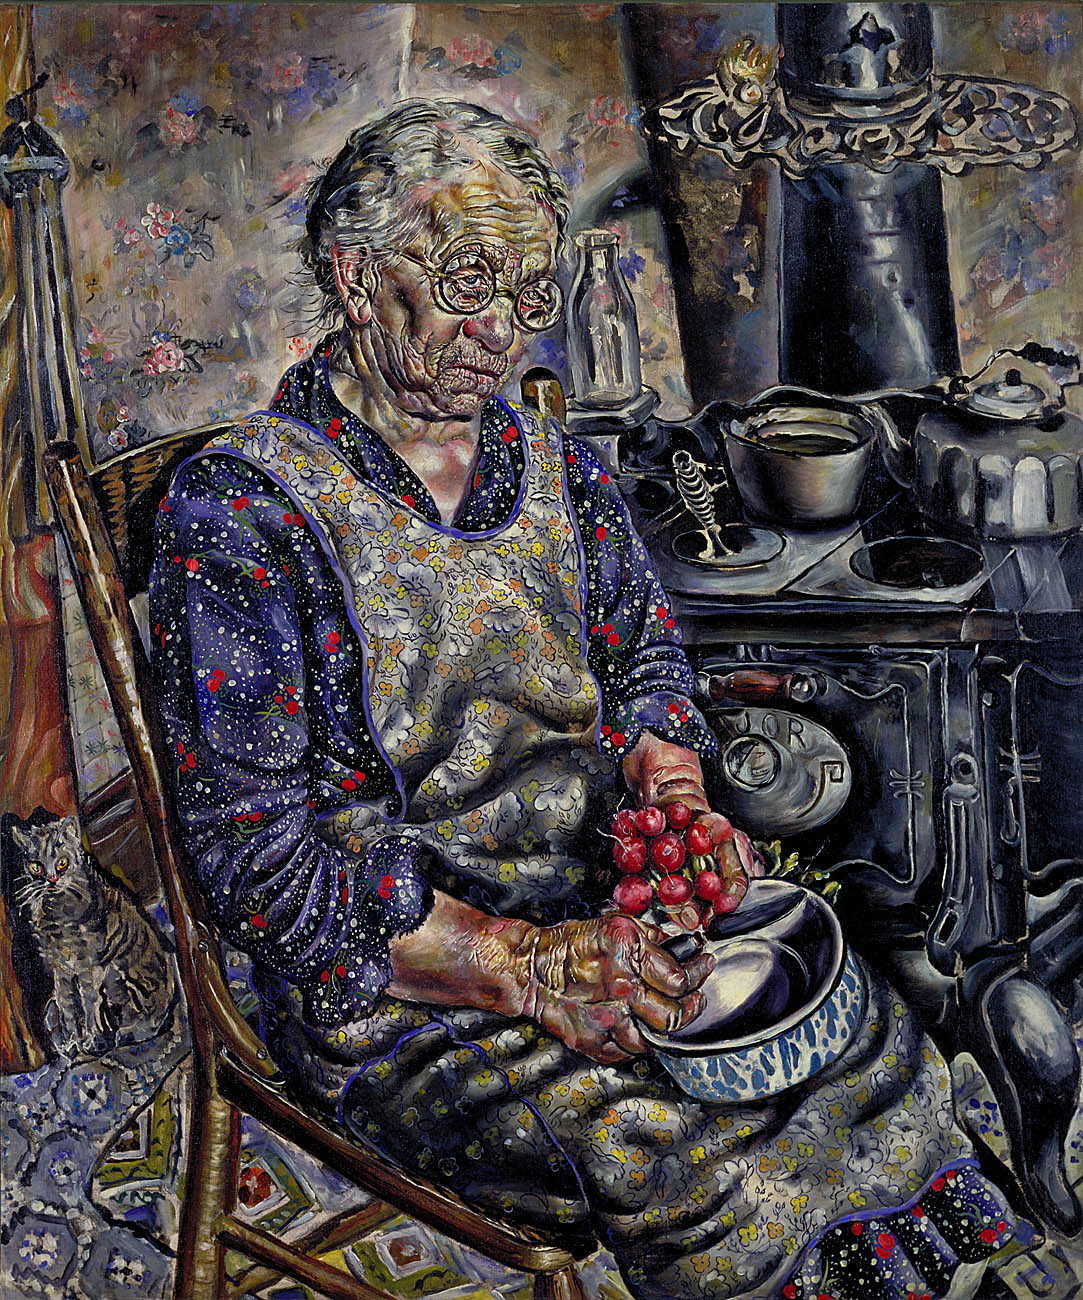 https://i1.wp.com/uploads4.wikipaintings.org/images/ivan-albright/the-farmer-s-kitchen.jpg